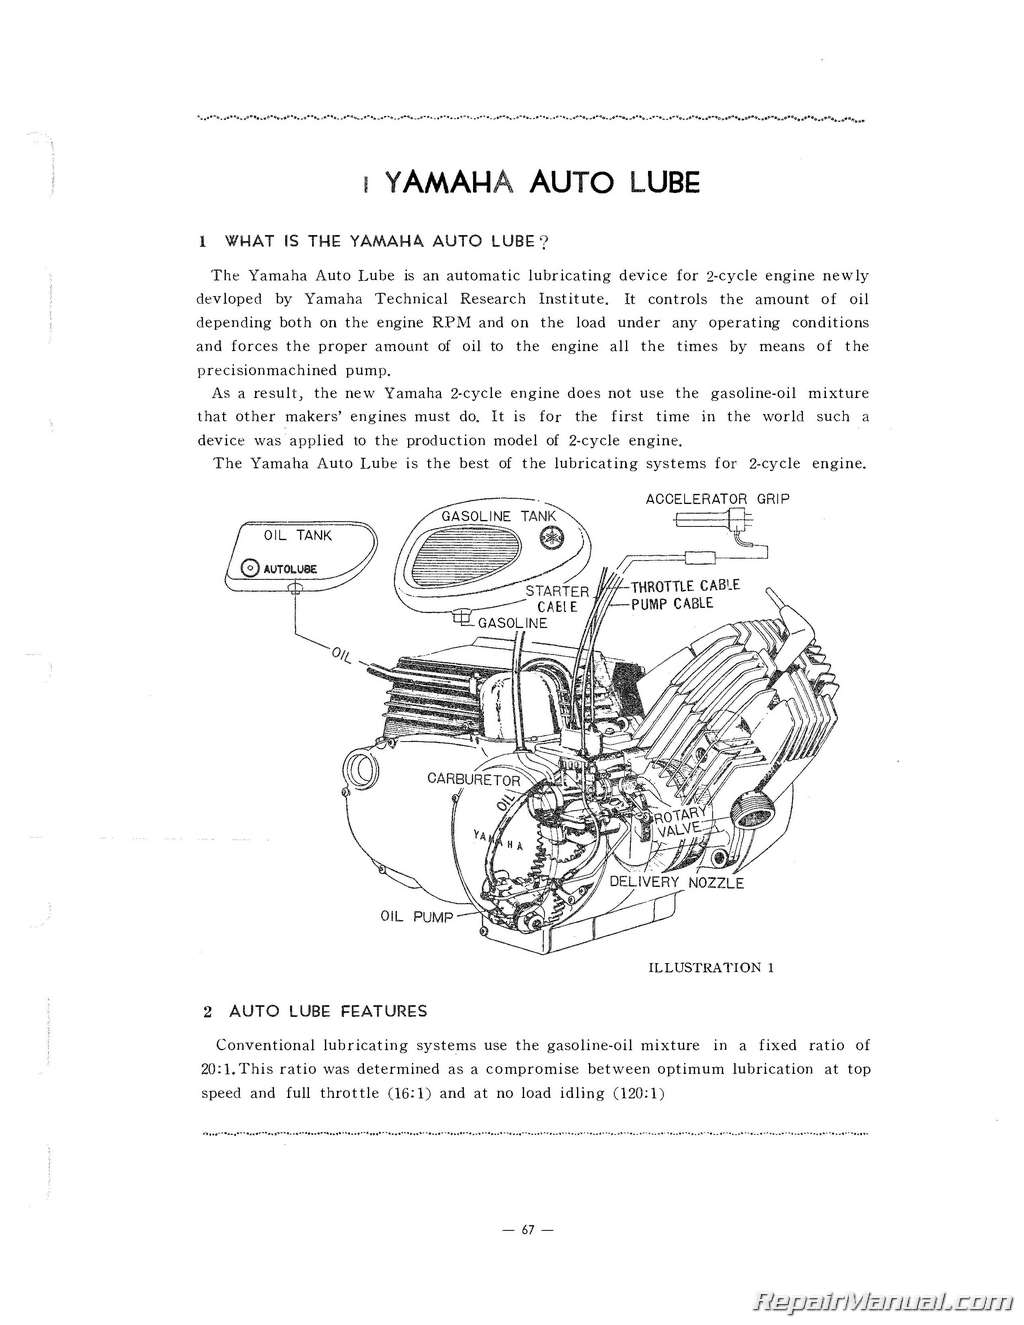 yamaha g1 manual 1964 1966 motorcycle service repair rh repairmanual com motorcycle manual yamaha xj 650 free motorcycle manuals yamaha